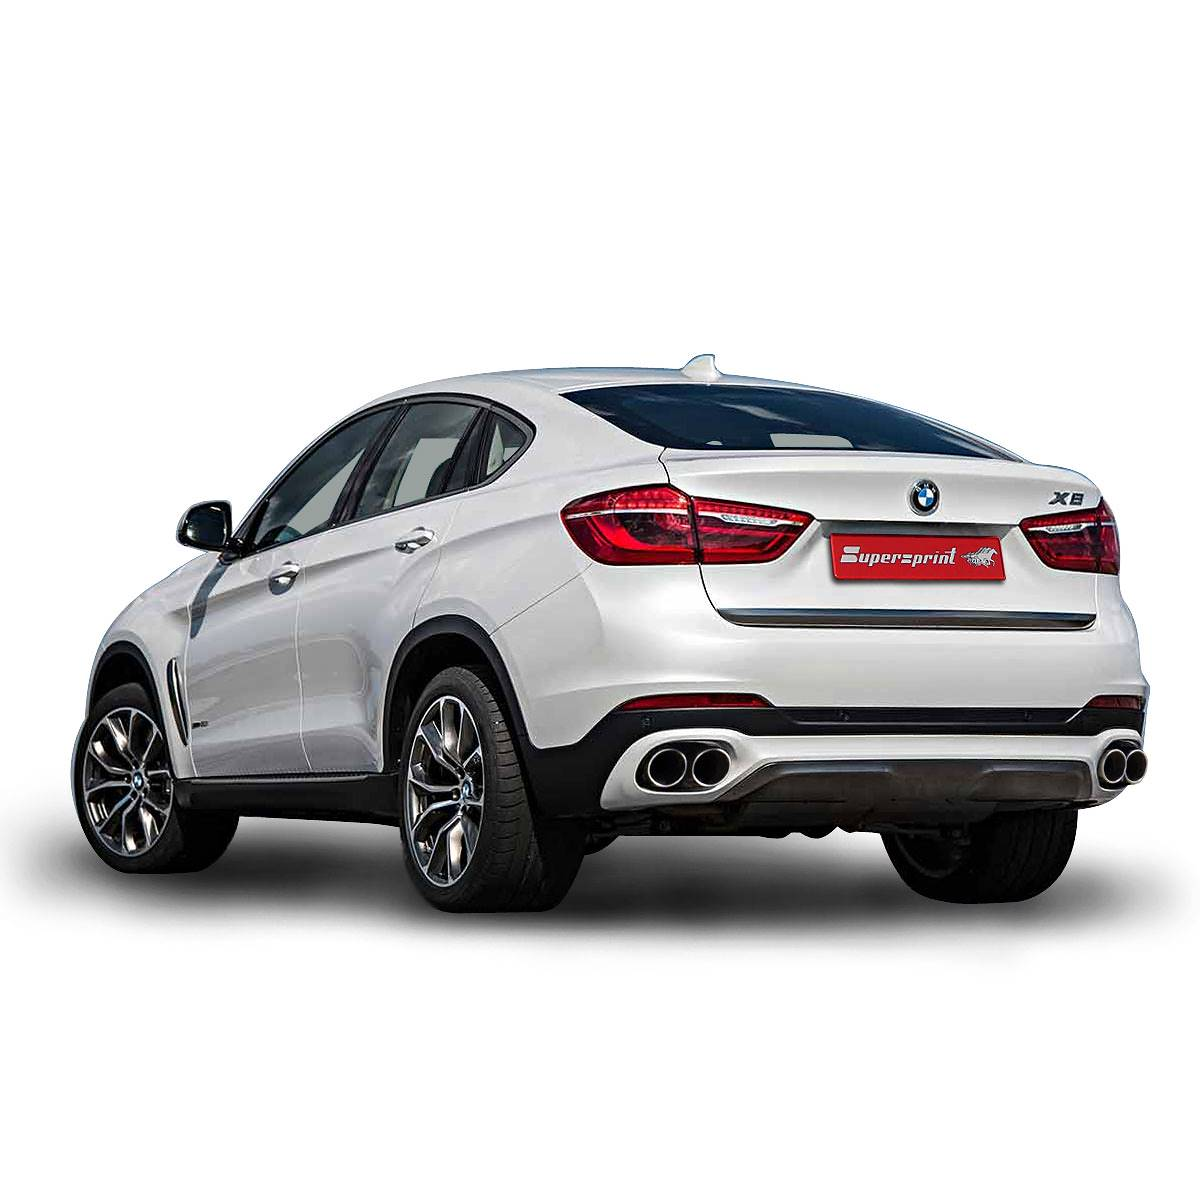 Performance Sport Exhaust For Bmw F16 X6 40d From 2014